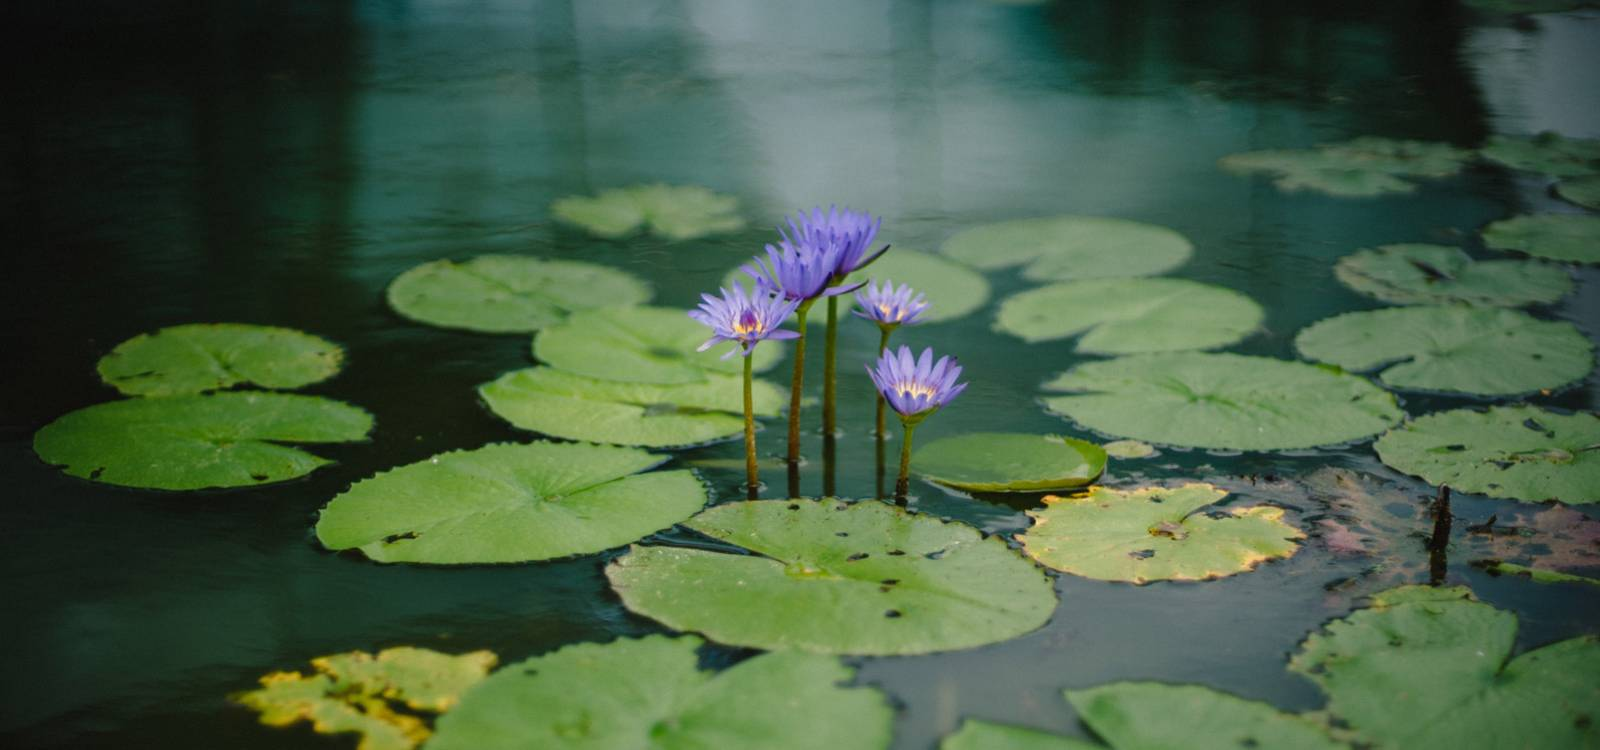 purple-pond-flowers.jpg